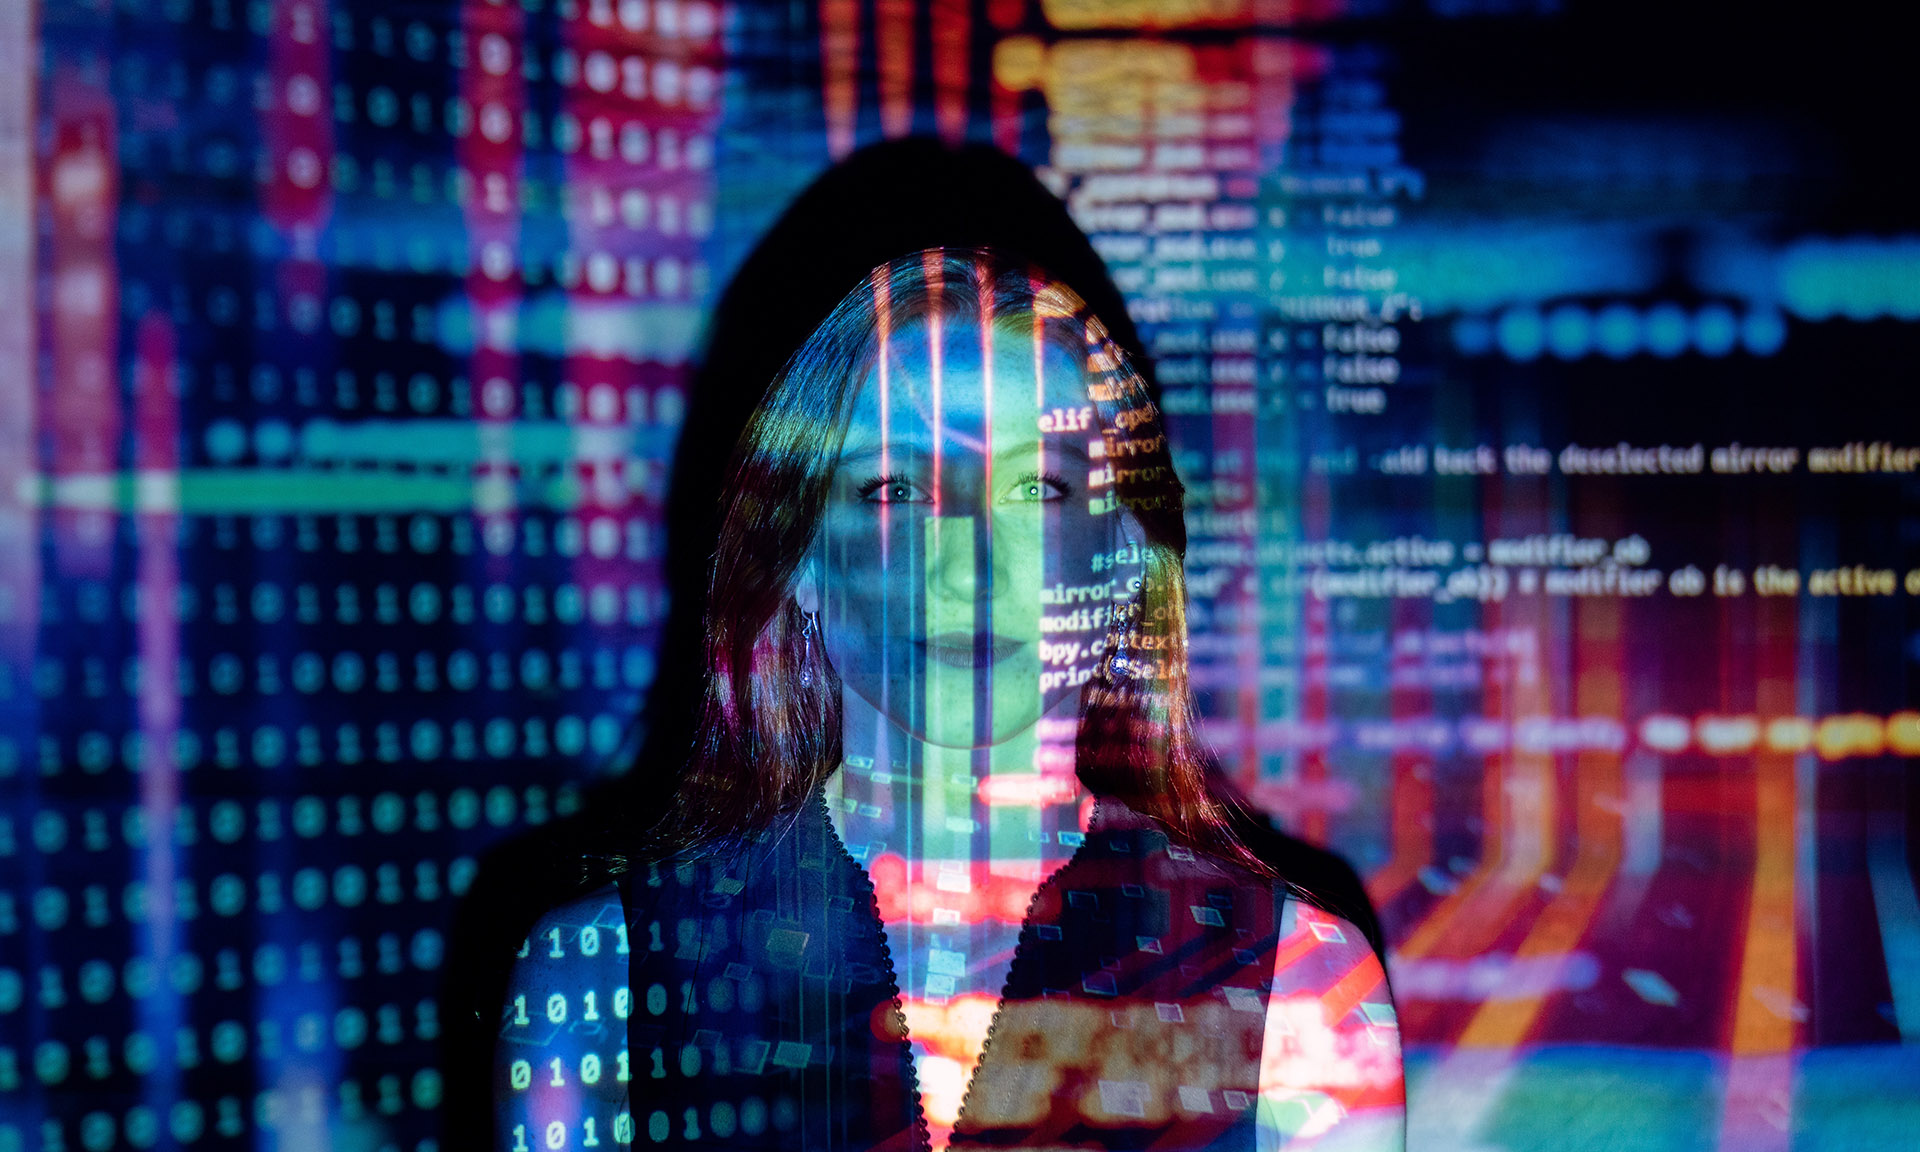 Young professional woman with computer code projected over her face and torso.